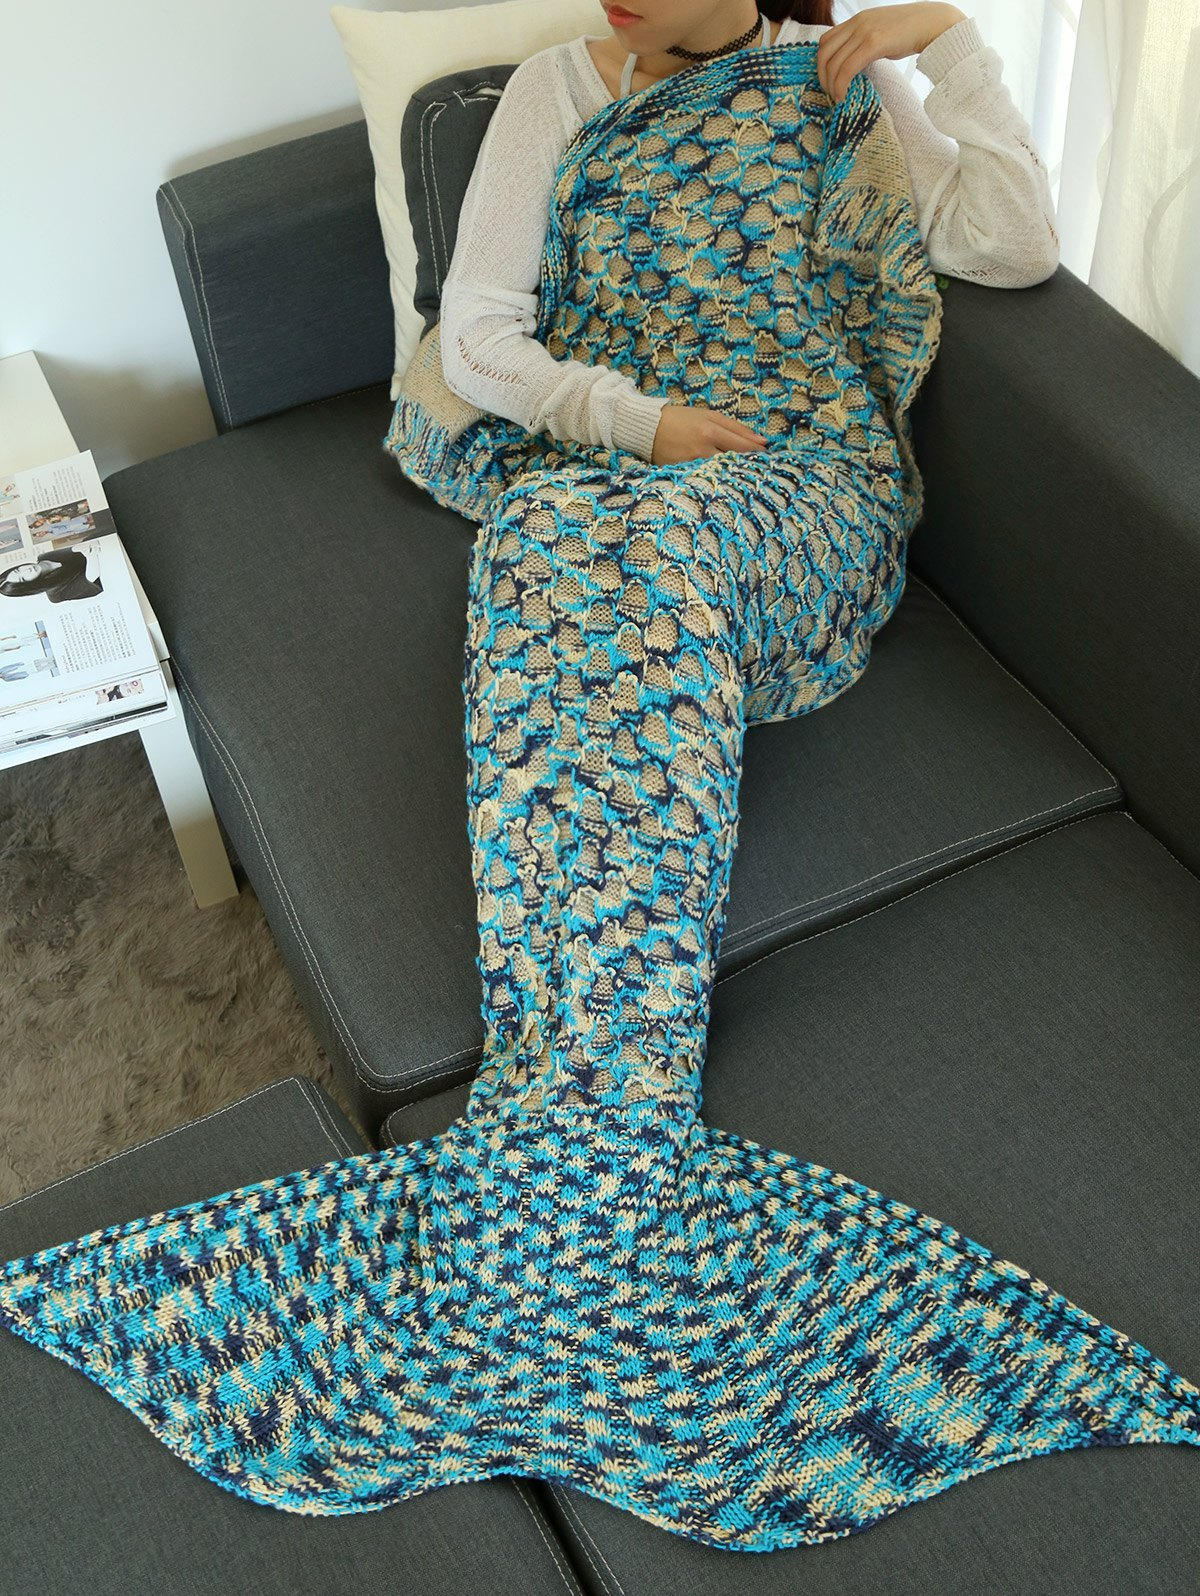 Camouflage Crochet Knit Mermaid Blanket Throw